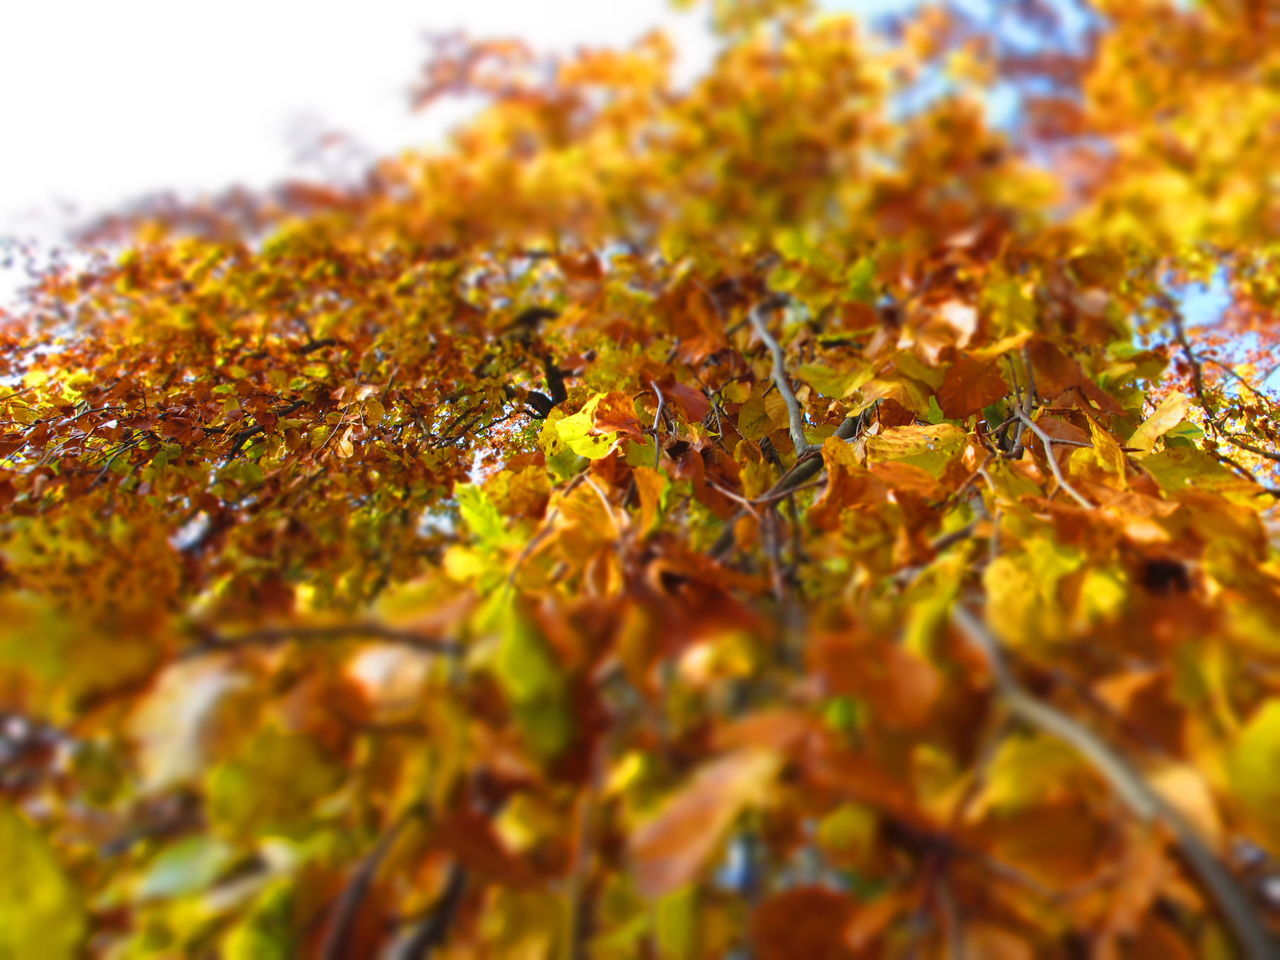 leaf, autumn, change, leaves, nature, maple leaf, beauty in nature, maple, maple tree, dry, tree, selective focus, outdoors, scenics, tranquility, no people, day, close-up, yellow, branch, sky